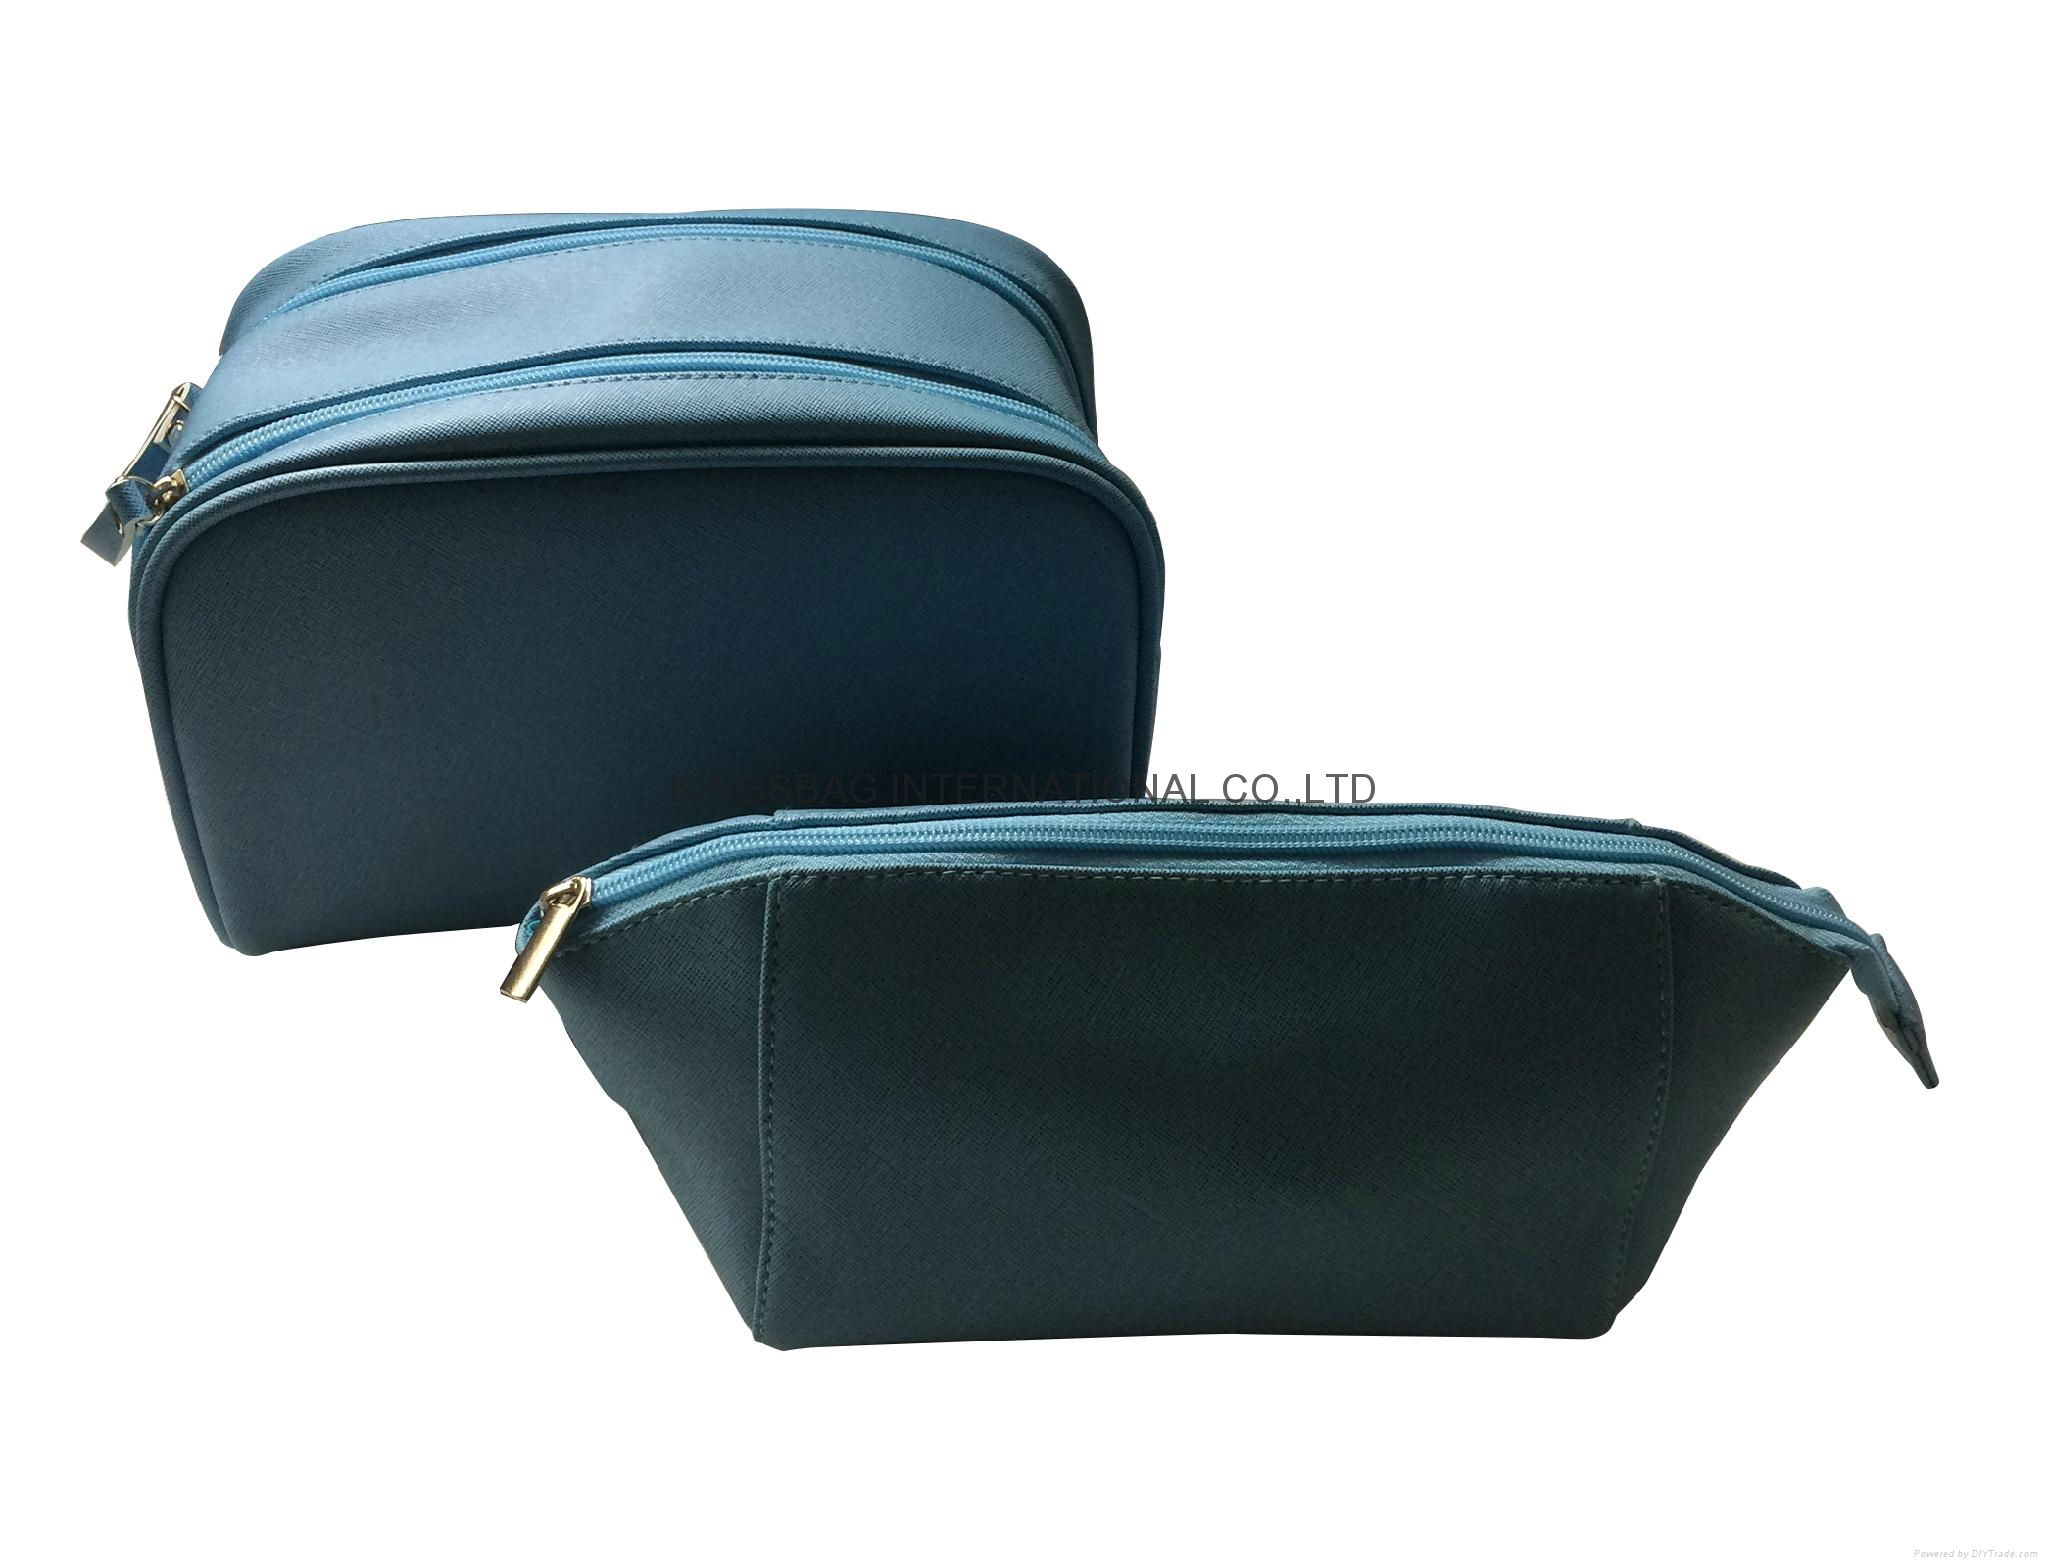 Imitation PU leather saffiano pattern fashion toiletry bag,PU cosmetic bag 2